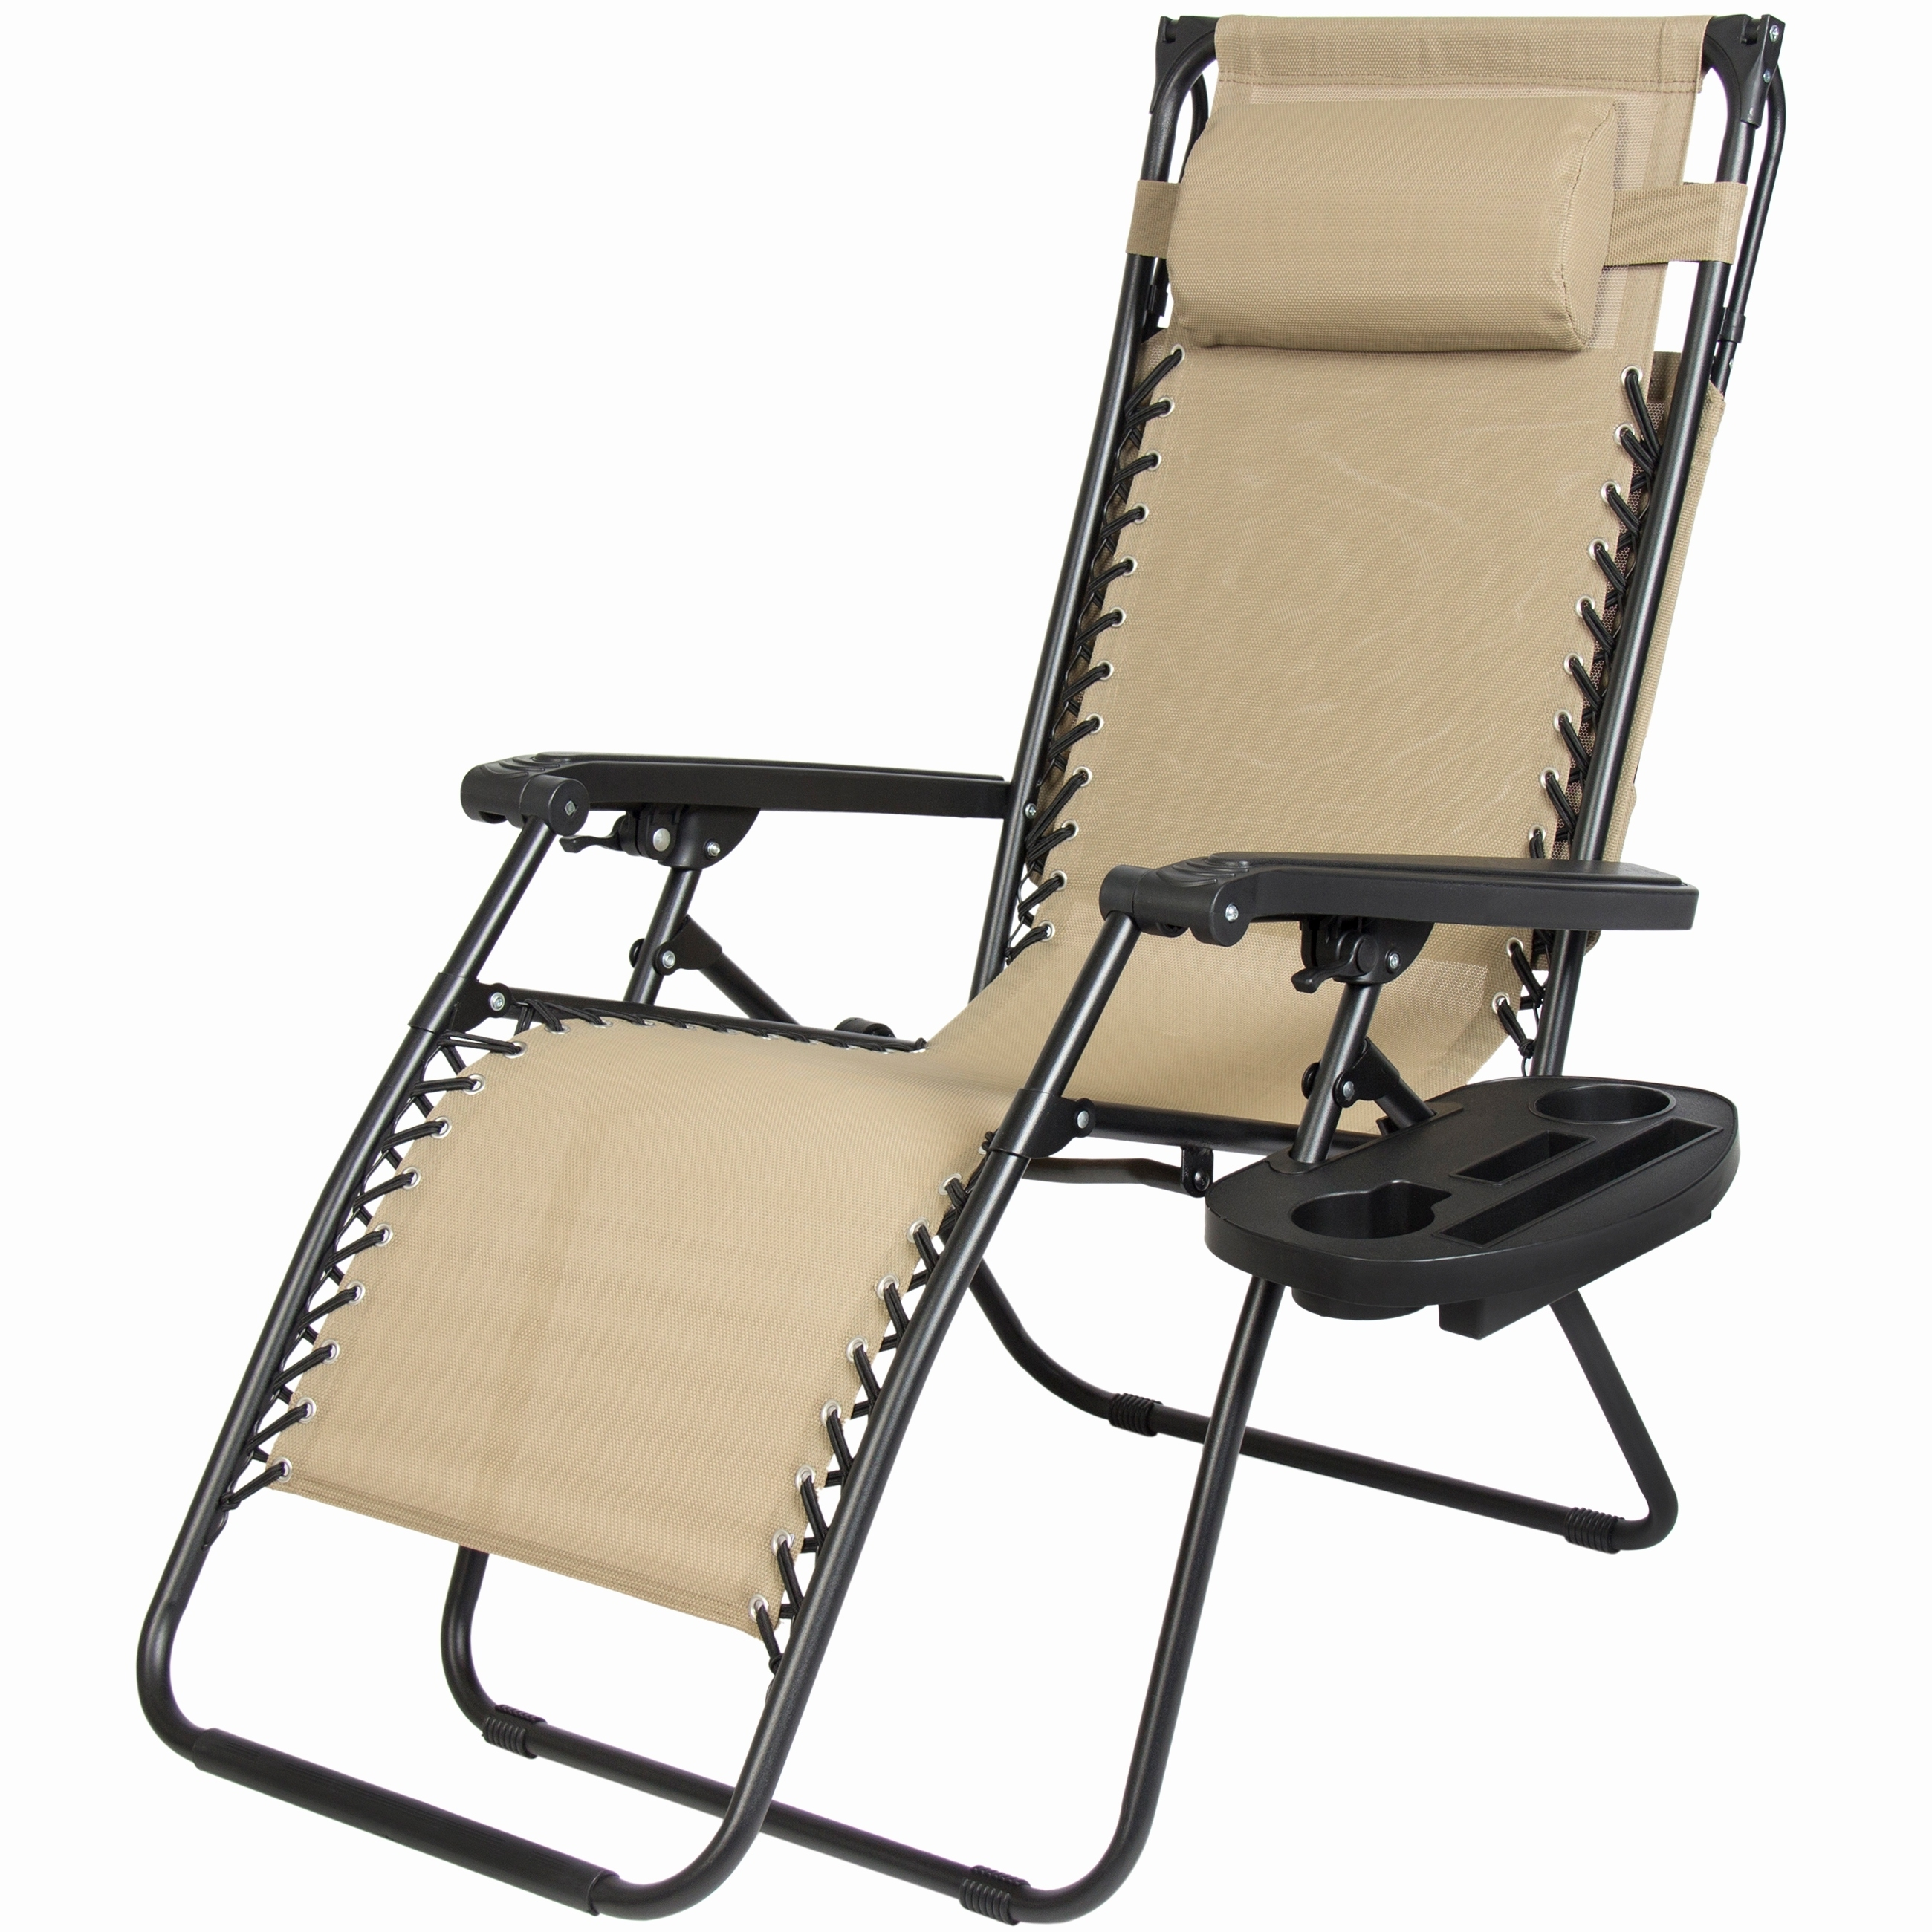 Lounge Chairs Target Target Chaise Lounge Chairs Outdoor Outdoor Ideas